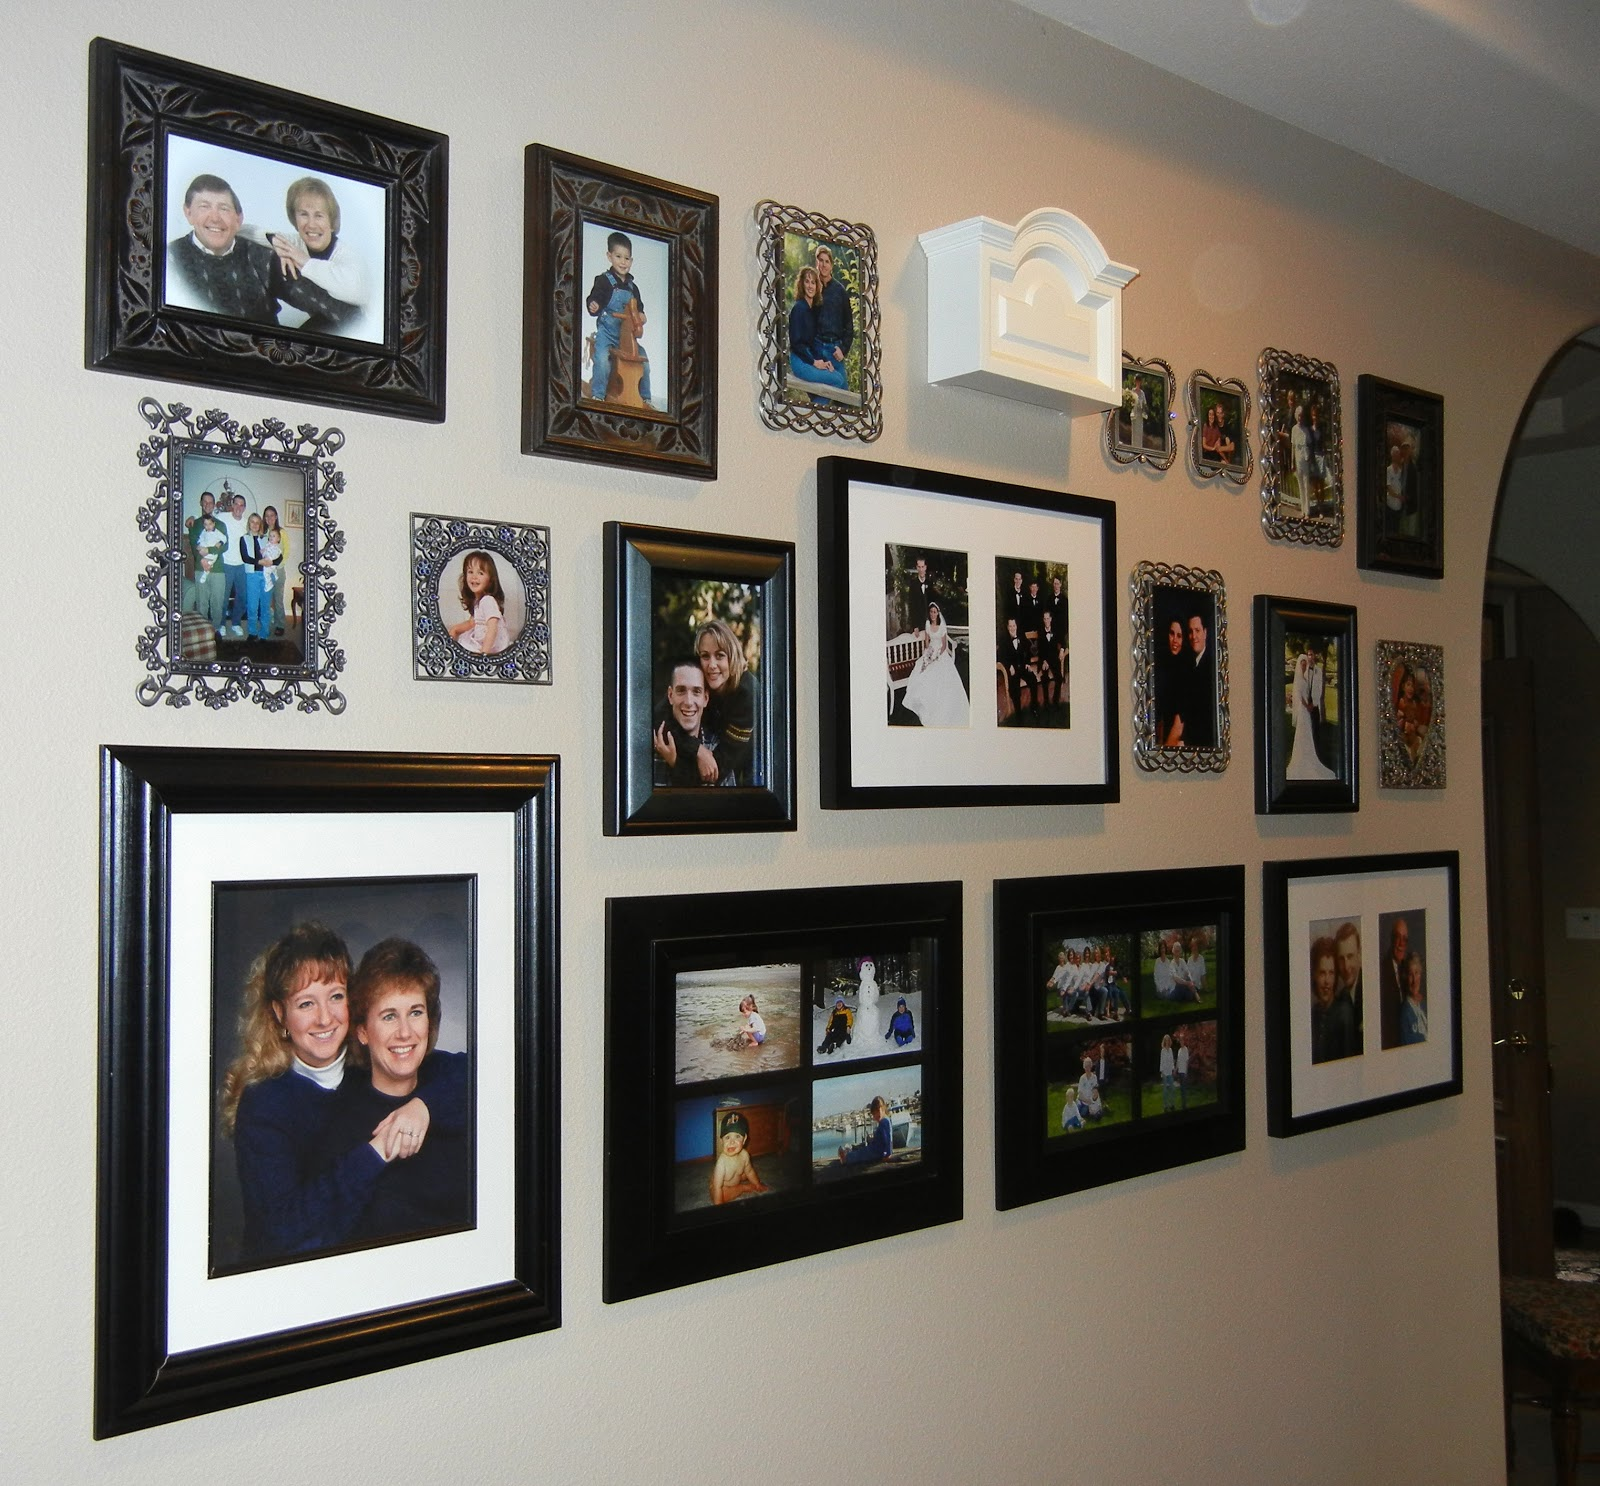 Photo Display Ideas: Pam Snider's Photo Walls